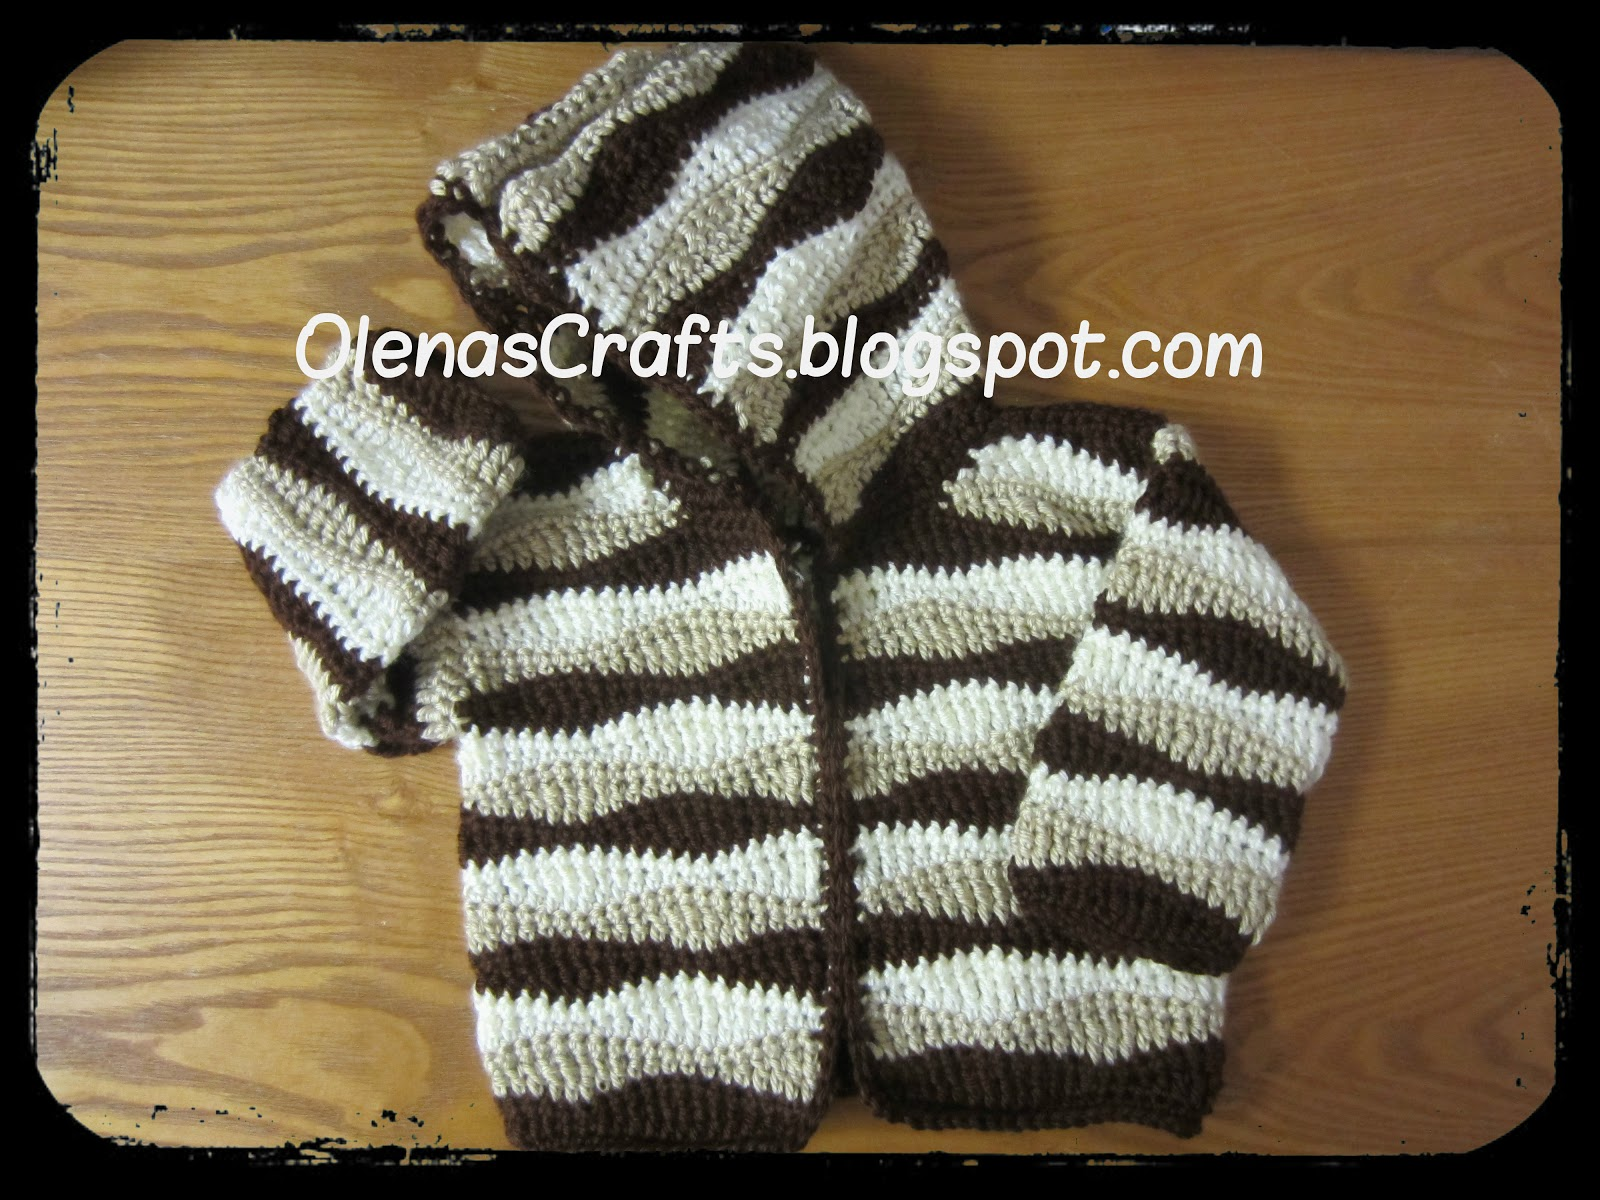 Olenas Crafts: Free Crochet Pattern! Wavy Child Hooded ...